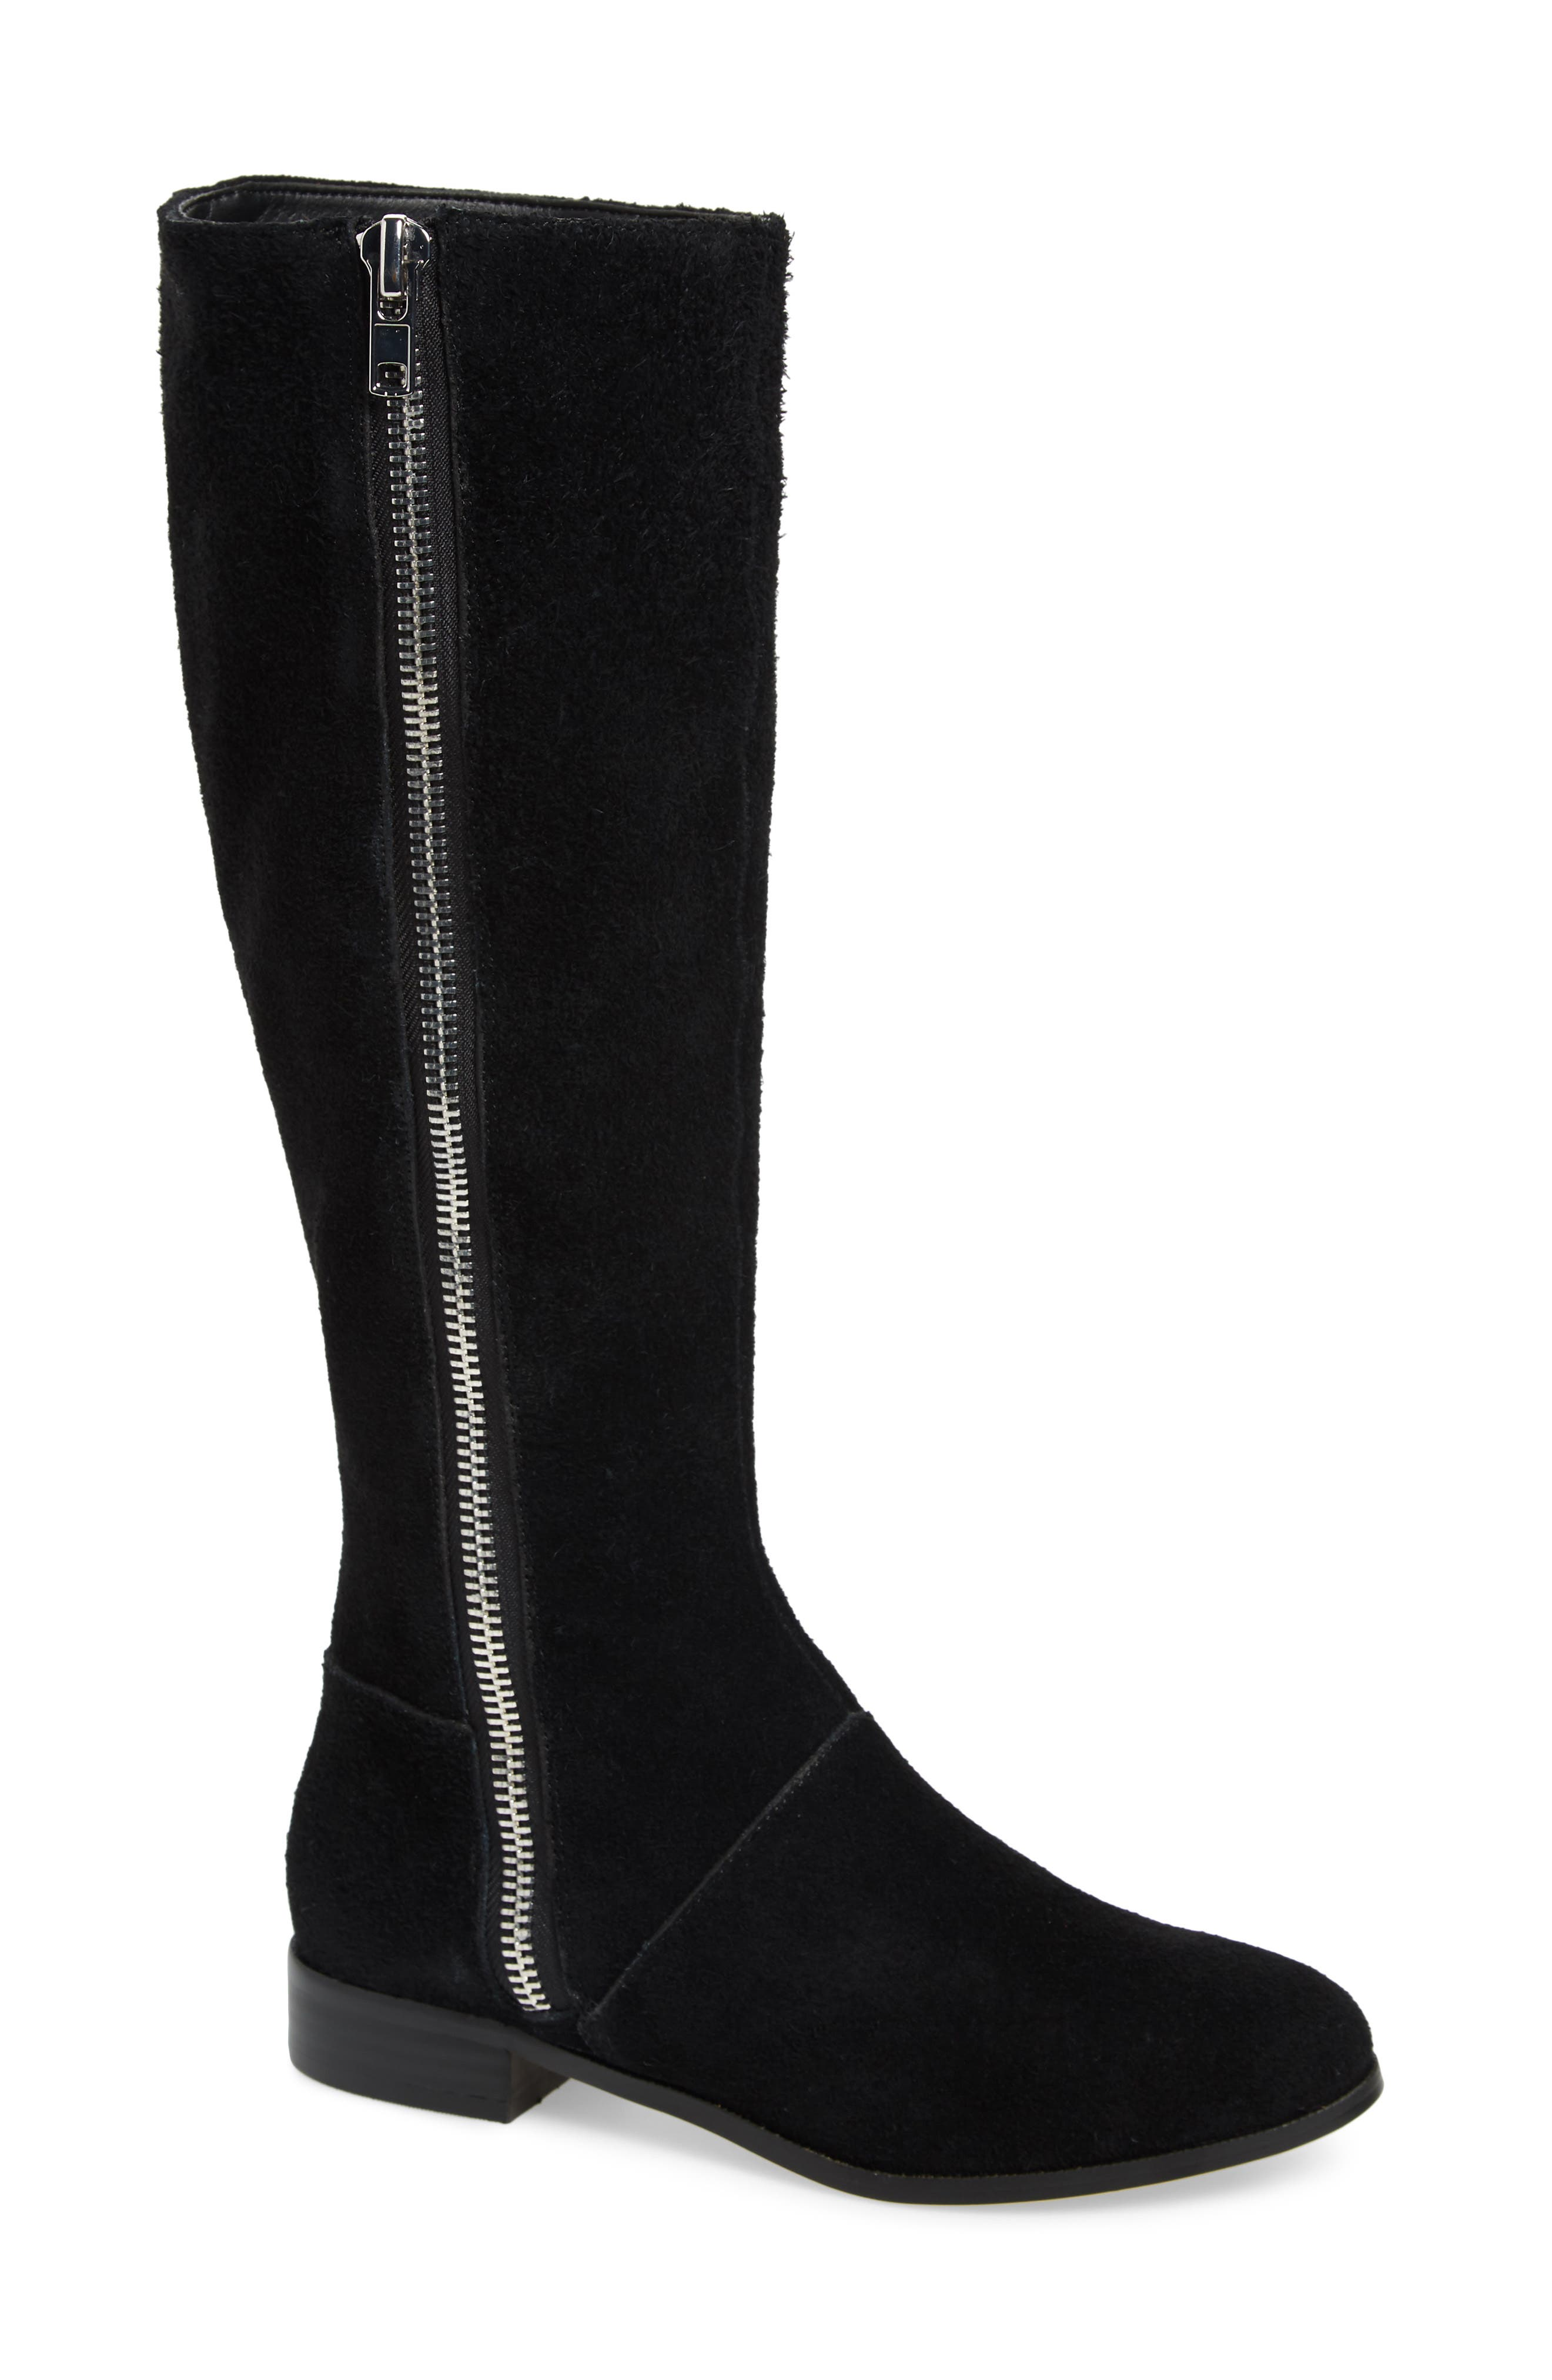 M4D3 Ramsey Knee High Boot